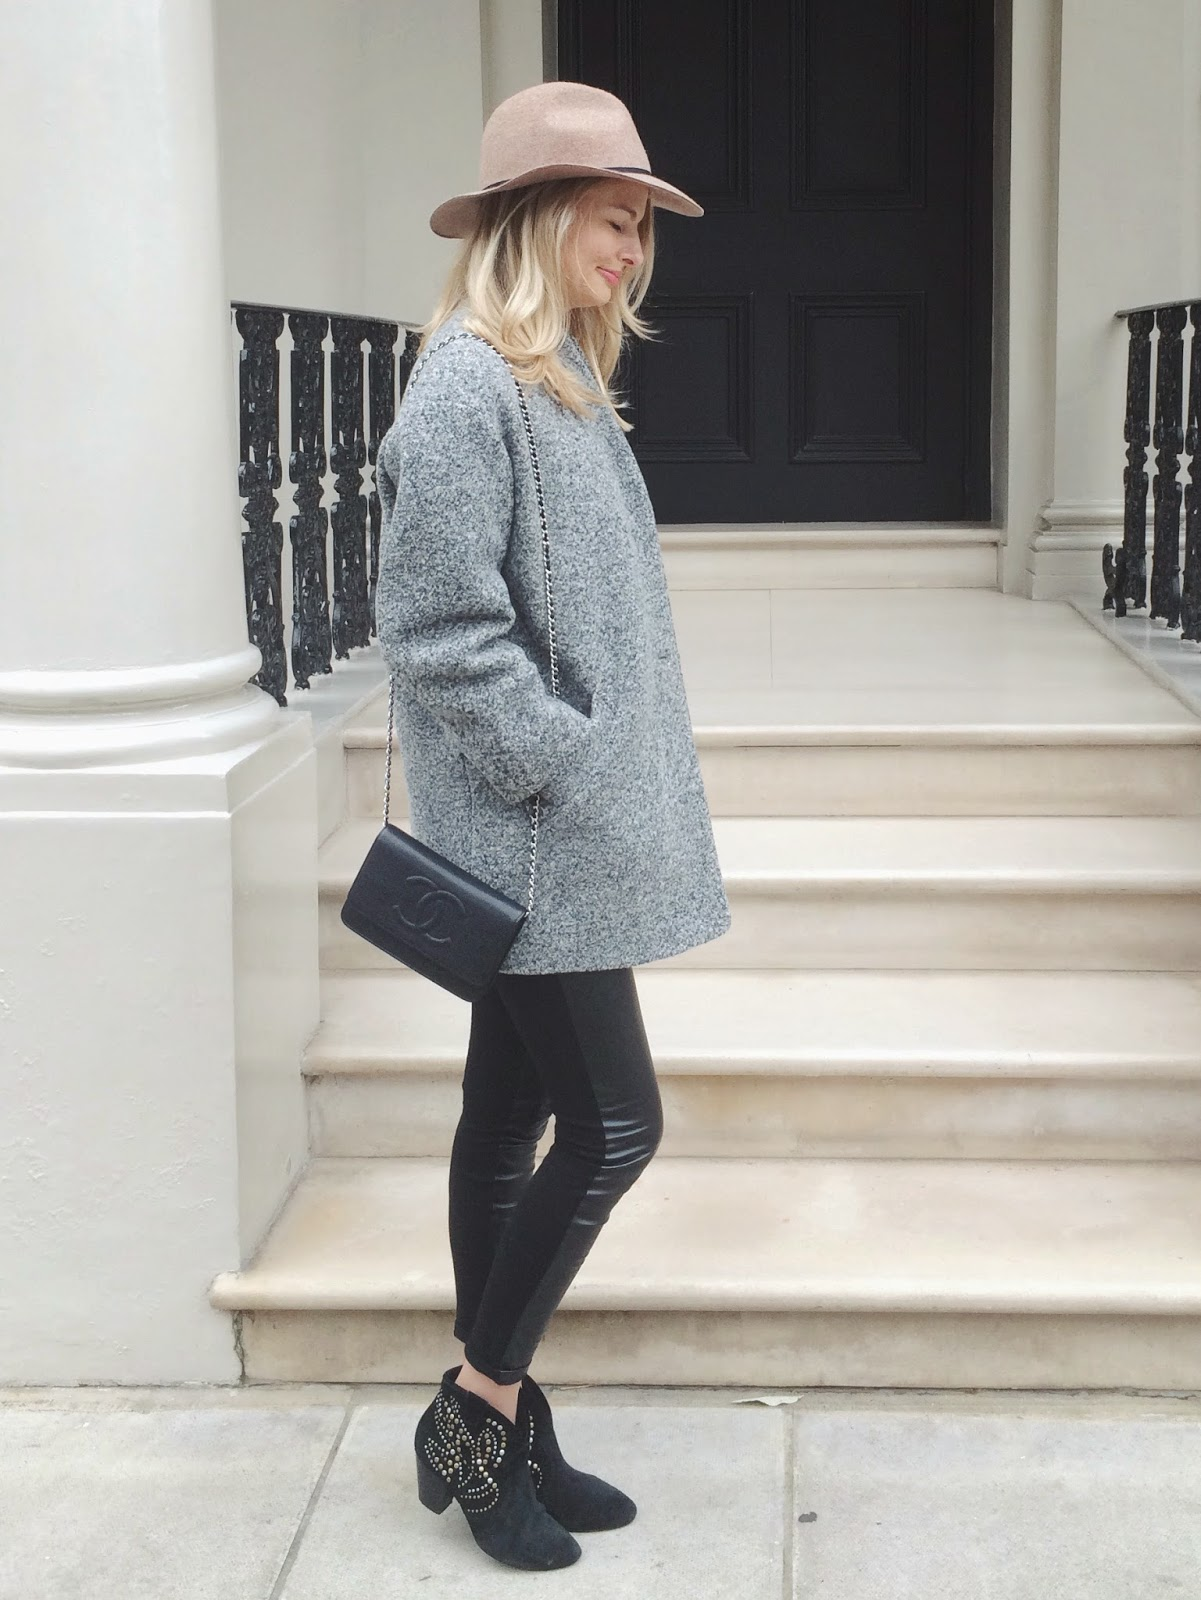 london street style, outfit of the day, grey coat, grey iro coat, blonde hair, tan fedora hat, black and grey outfit